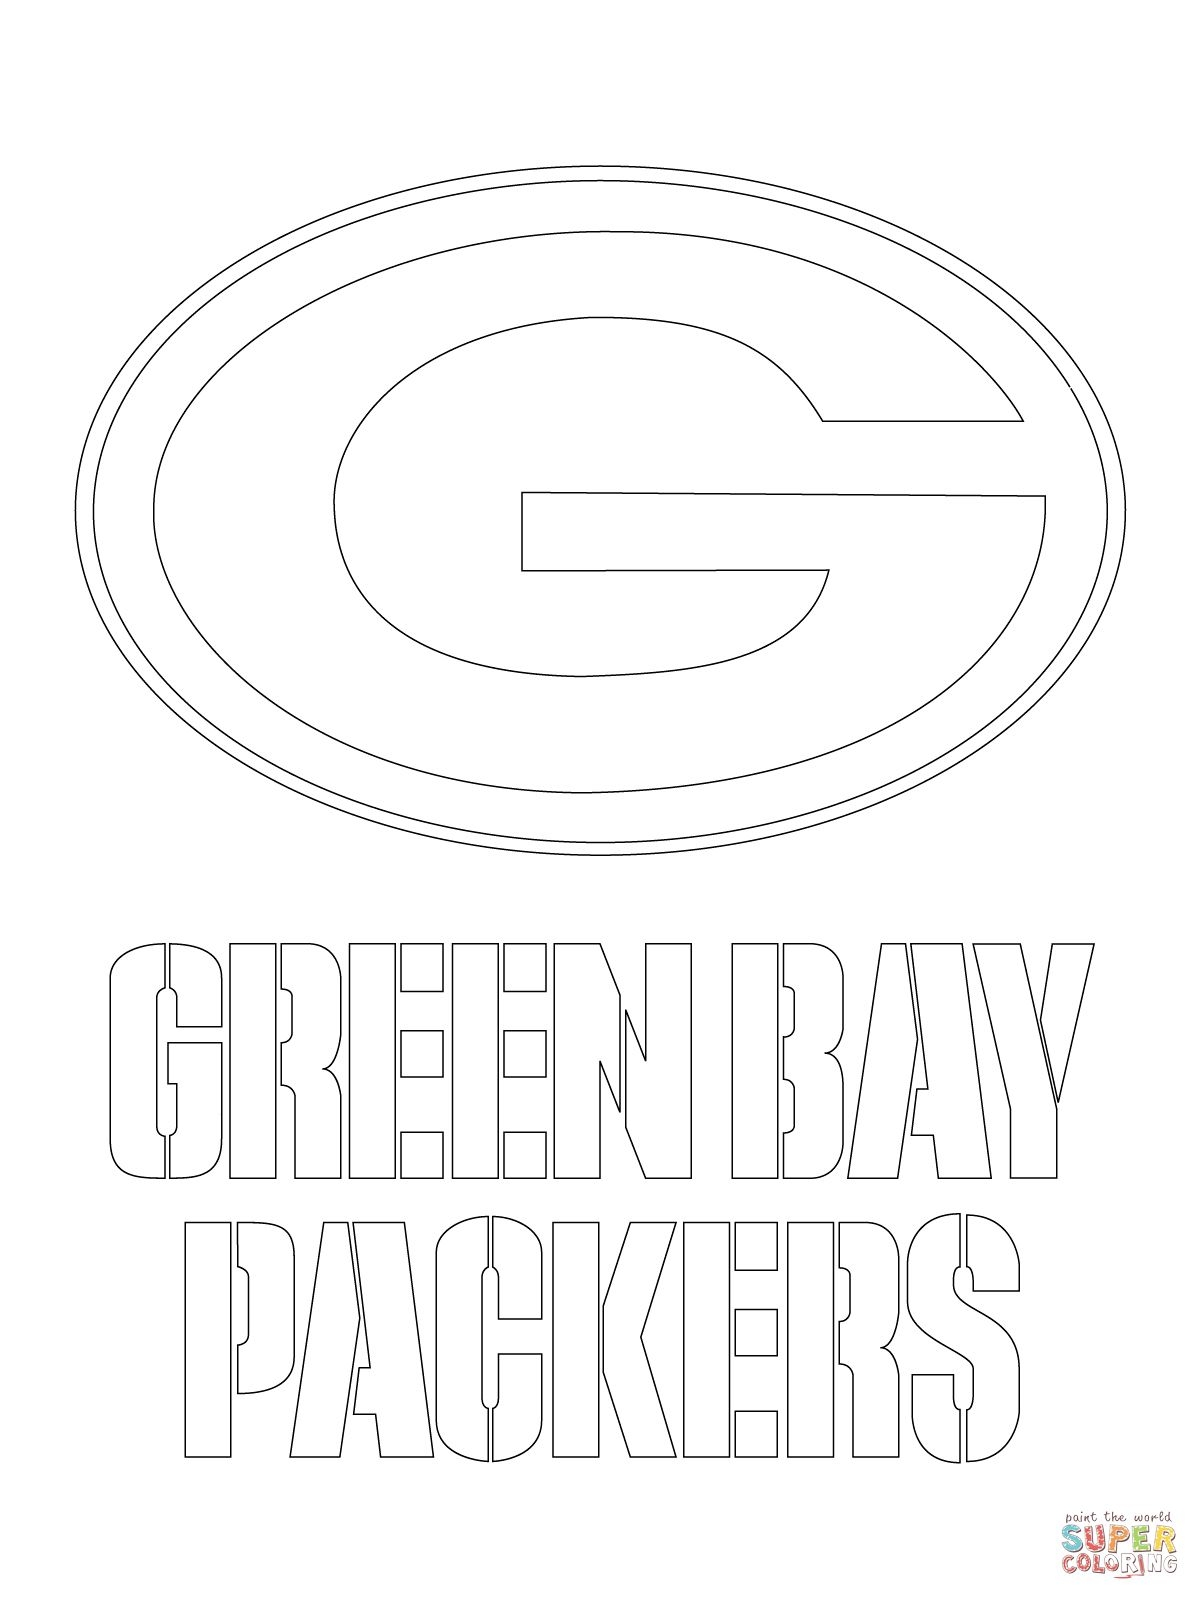 1200x1600 Coloring Nfl Football Helmets Coloring Pages Eagles Teams Logos